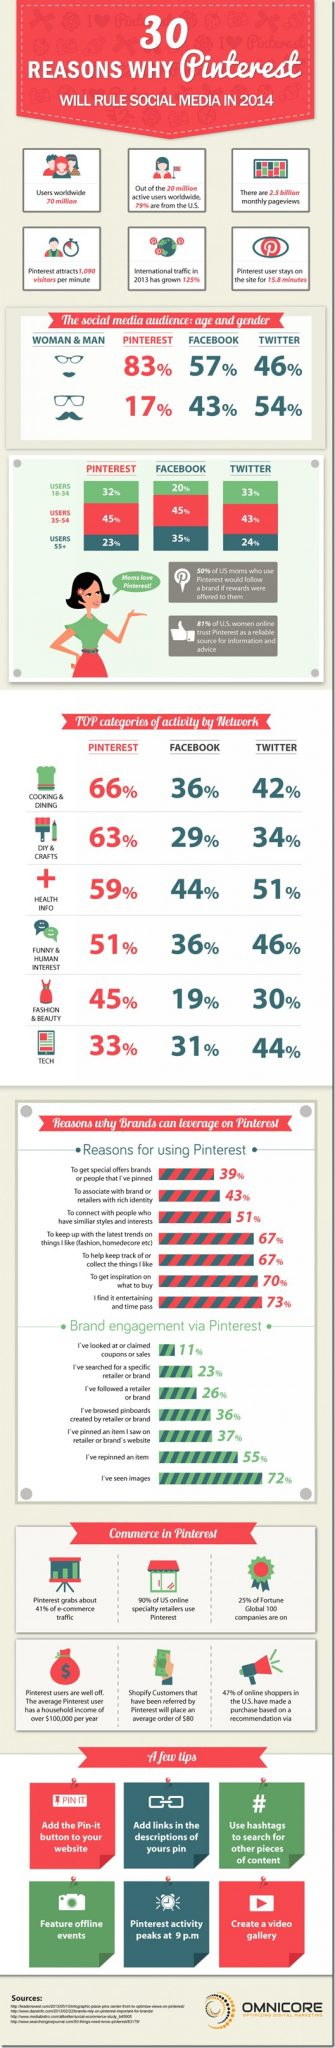 Reasons-to-market-your-business-on-pinterest-in-2014-larger-view